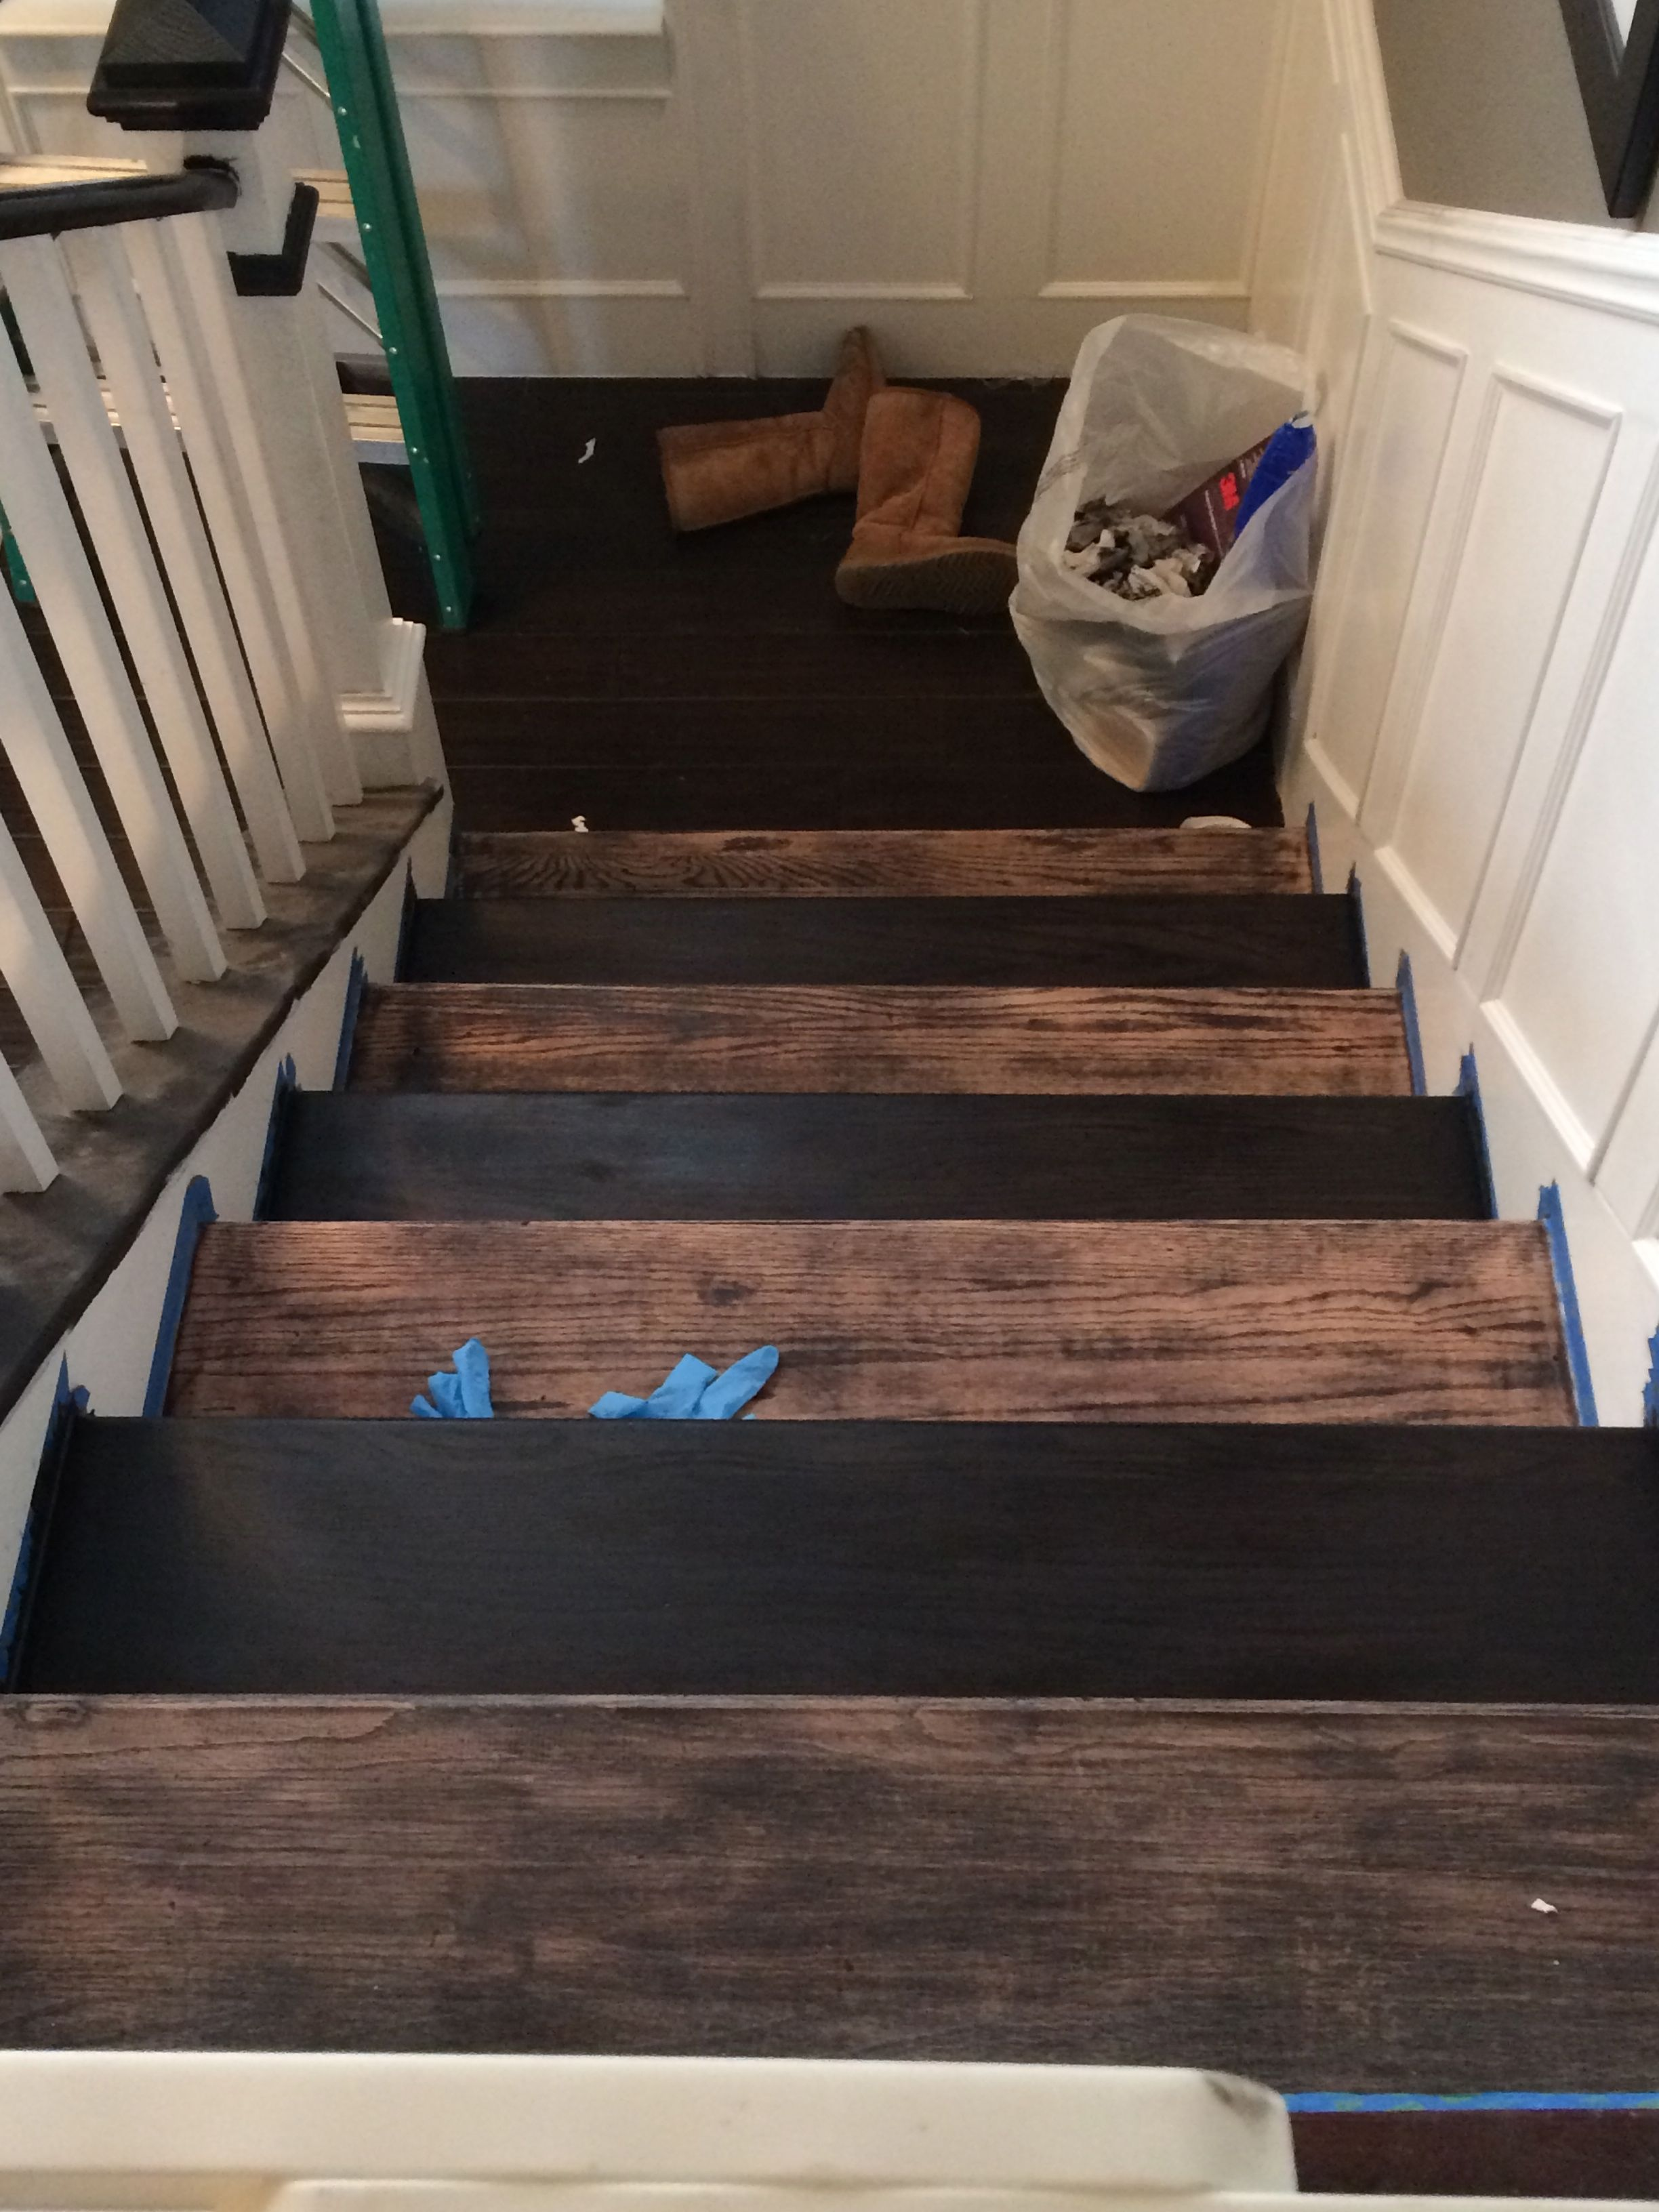 Stain every other stair so you can still use them.